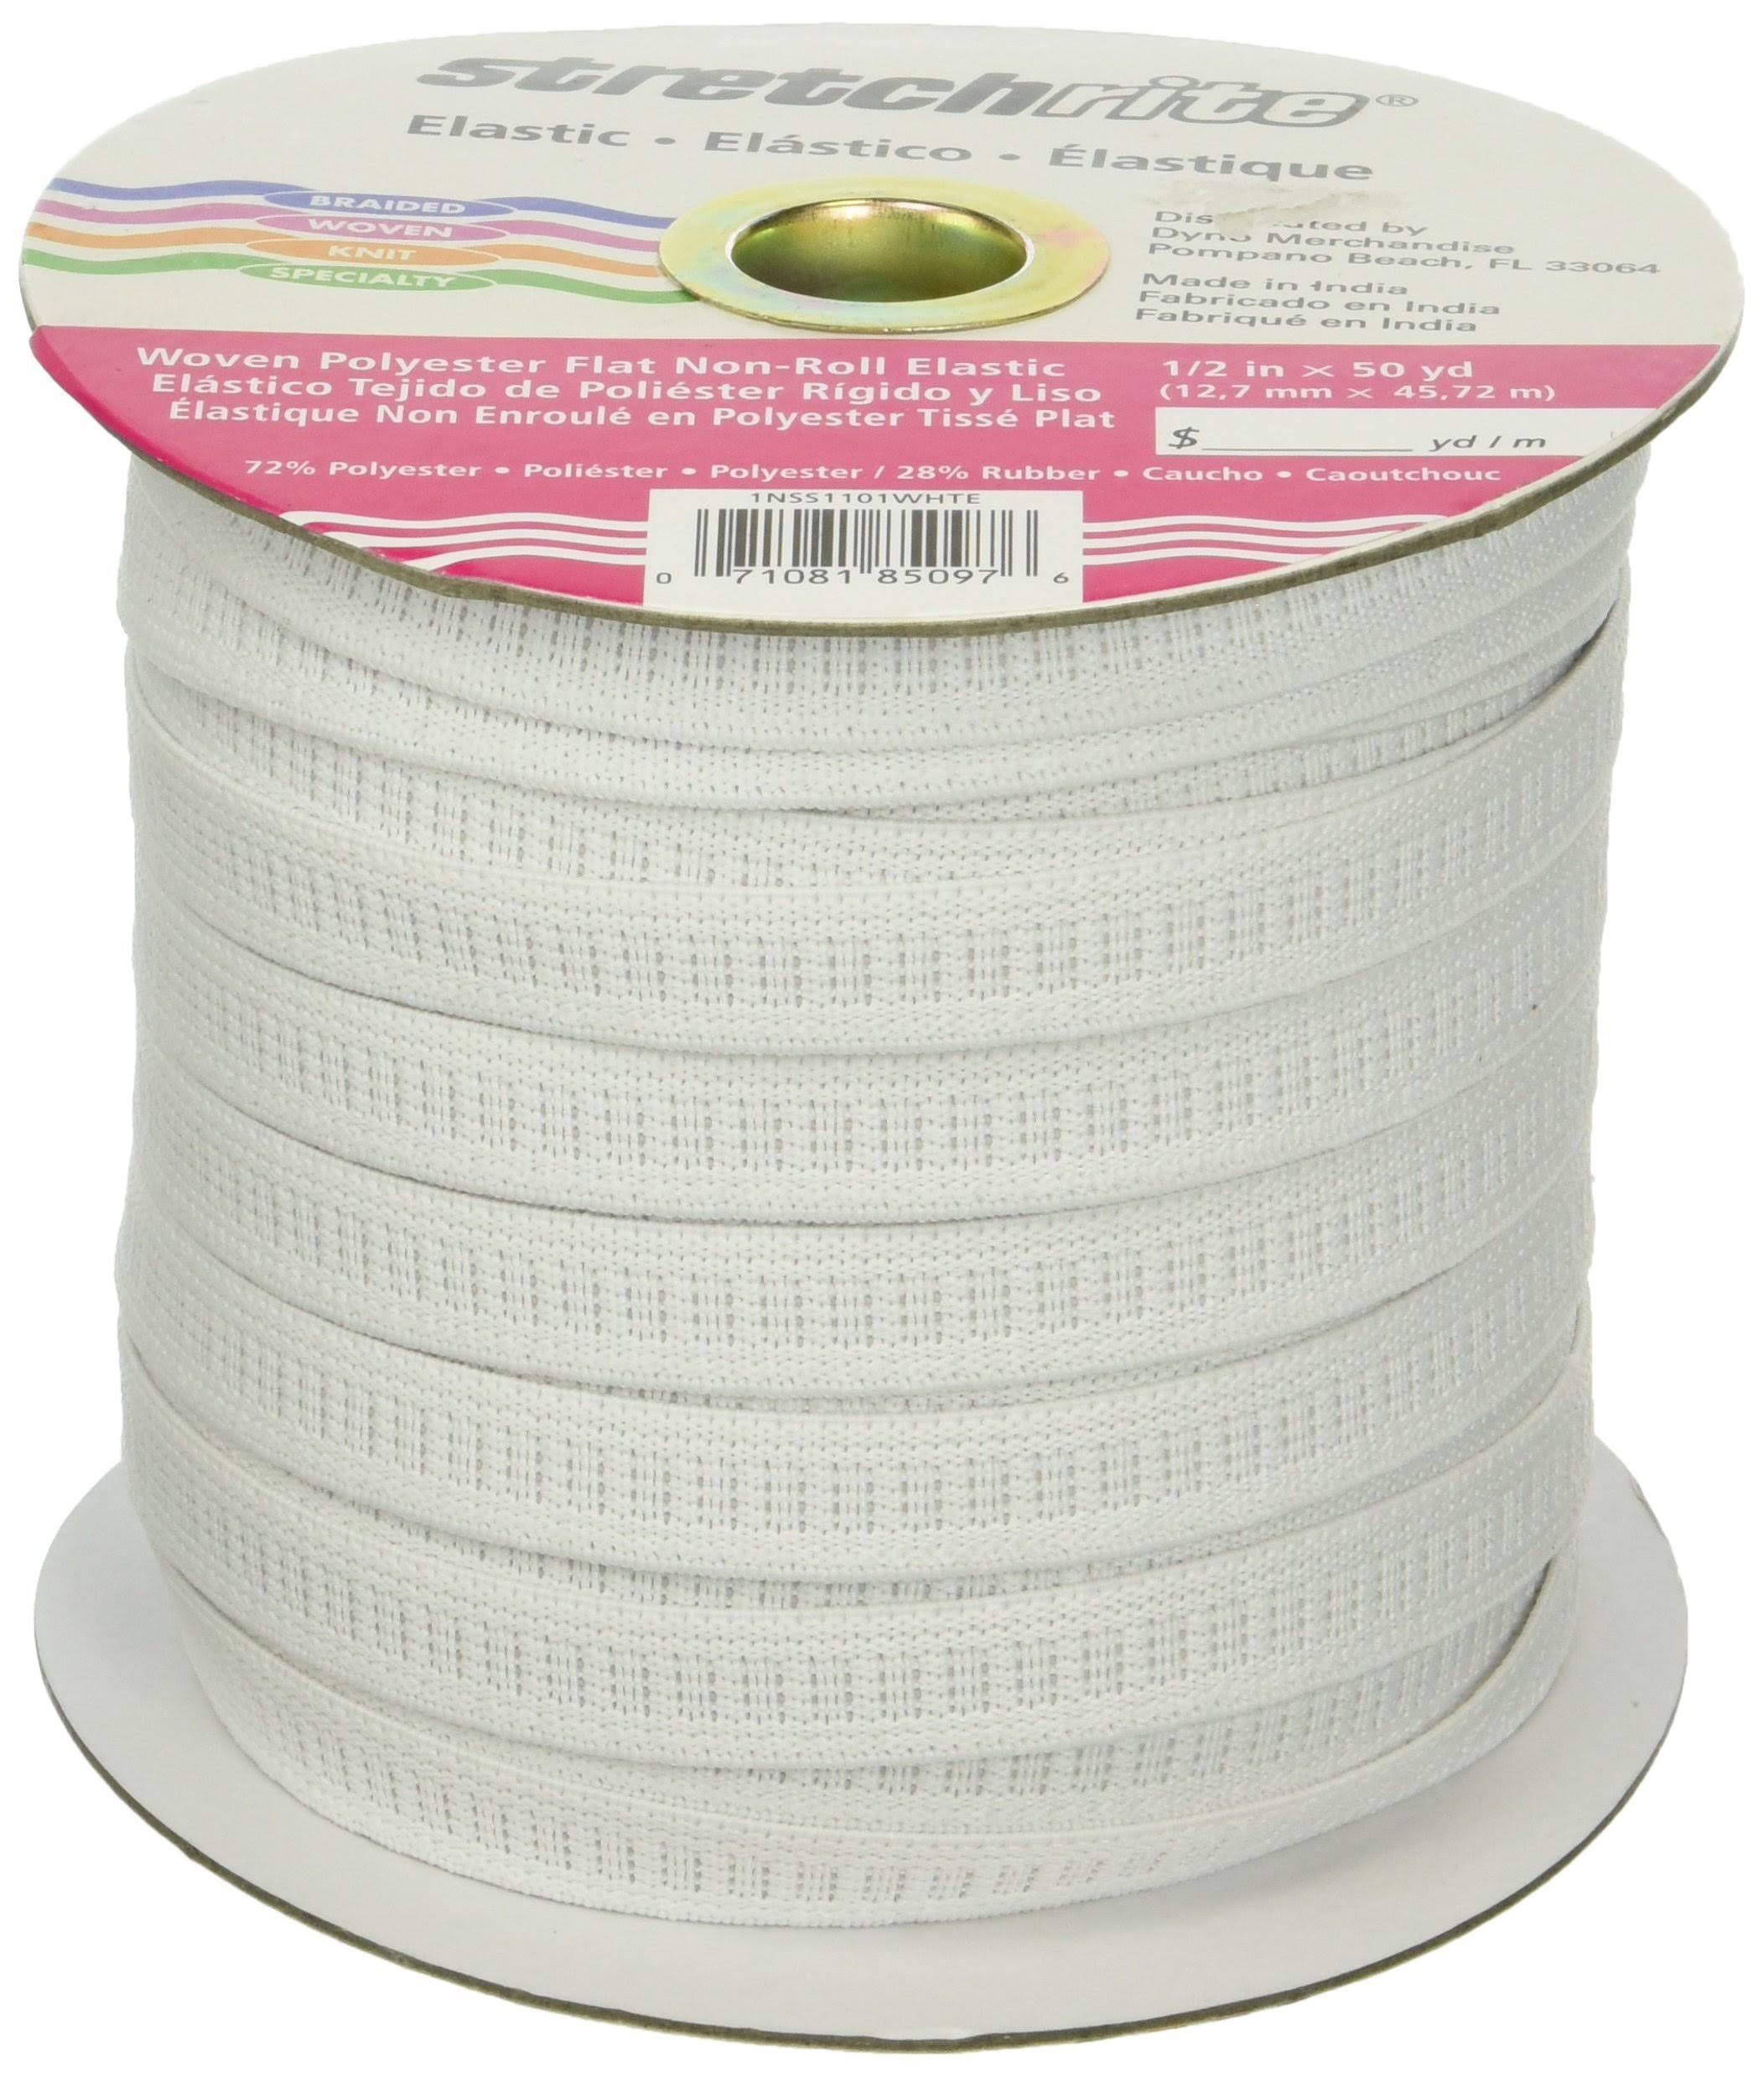 Stretchrite Non-Roll Flat Elastic - White, 1/2'' x 50yd